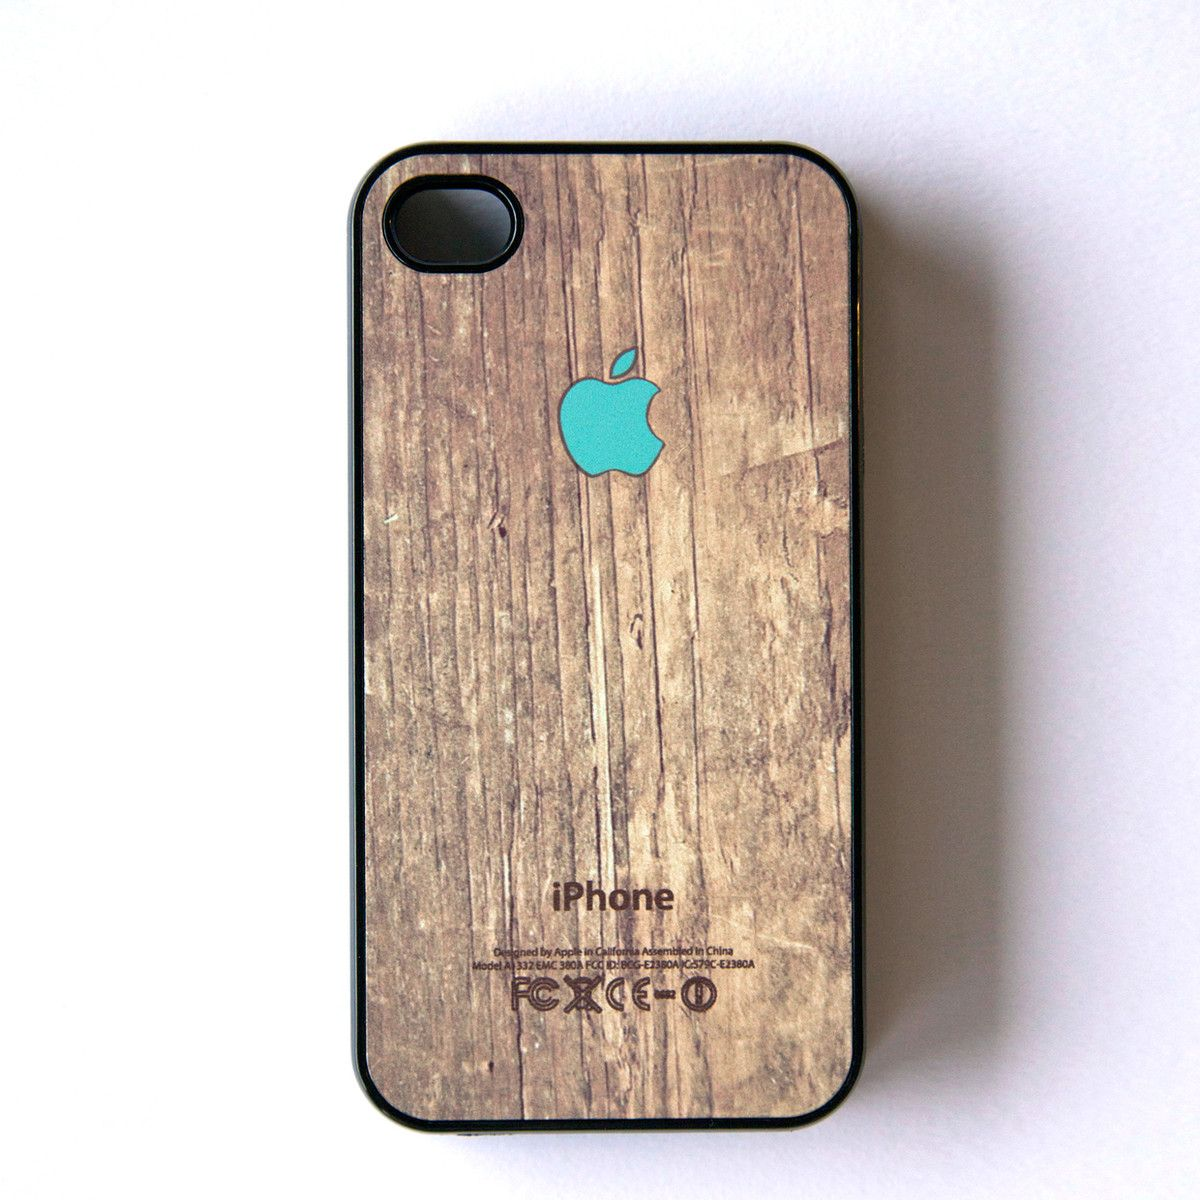 BlissfulCASE for iPhone 4/4S